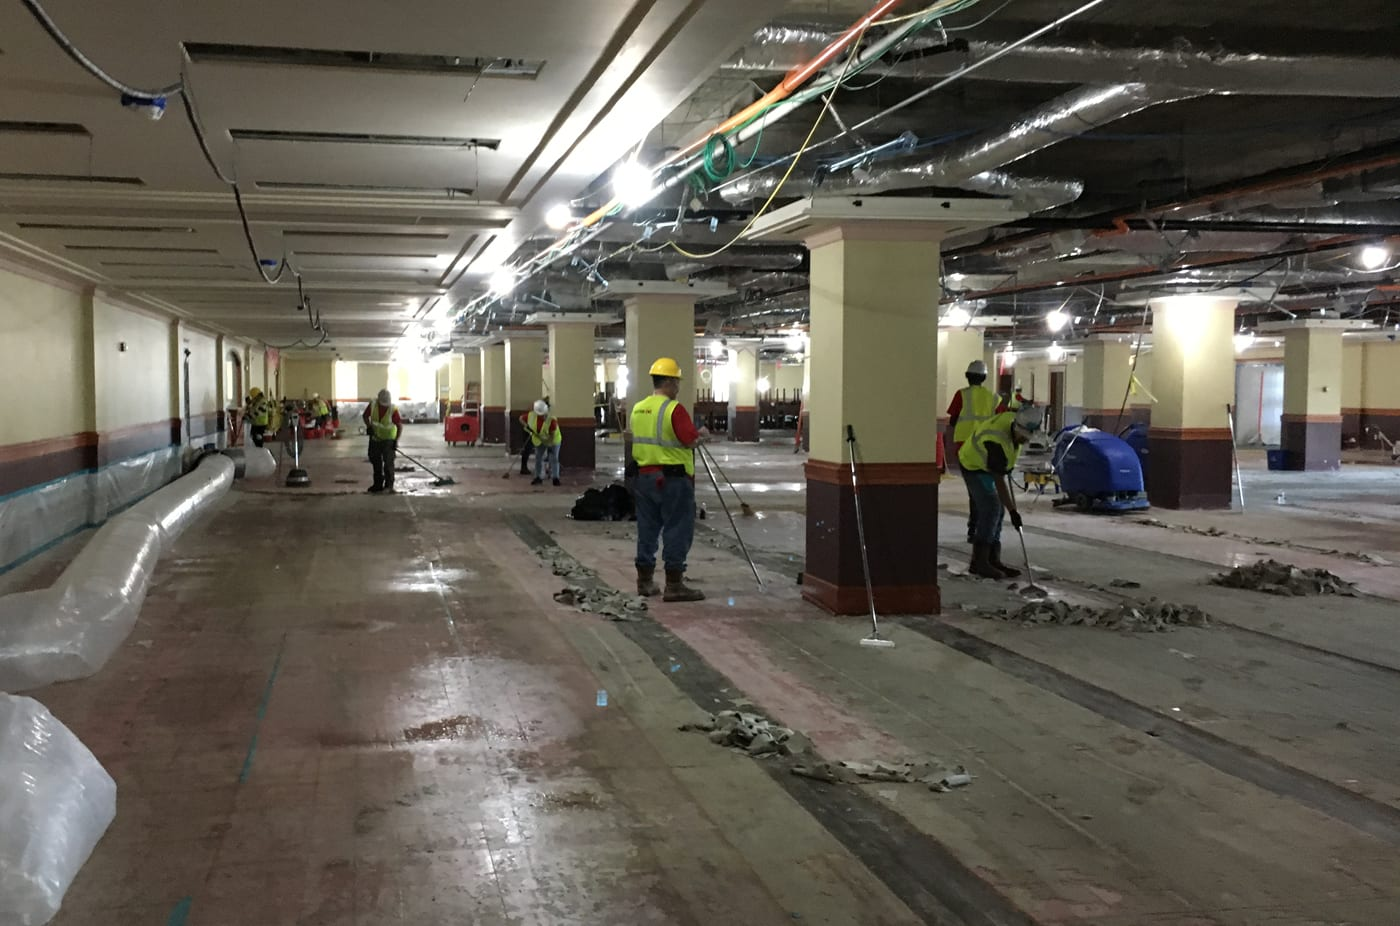 Eight workers in hard hats and yellow construction vests are stationed across the entire length of the floor wielding long-handled scraping tools.